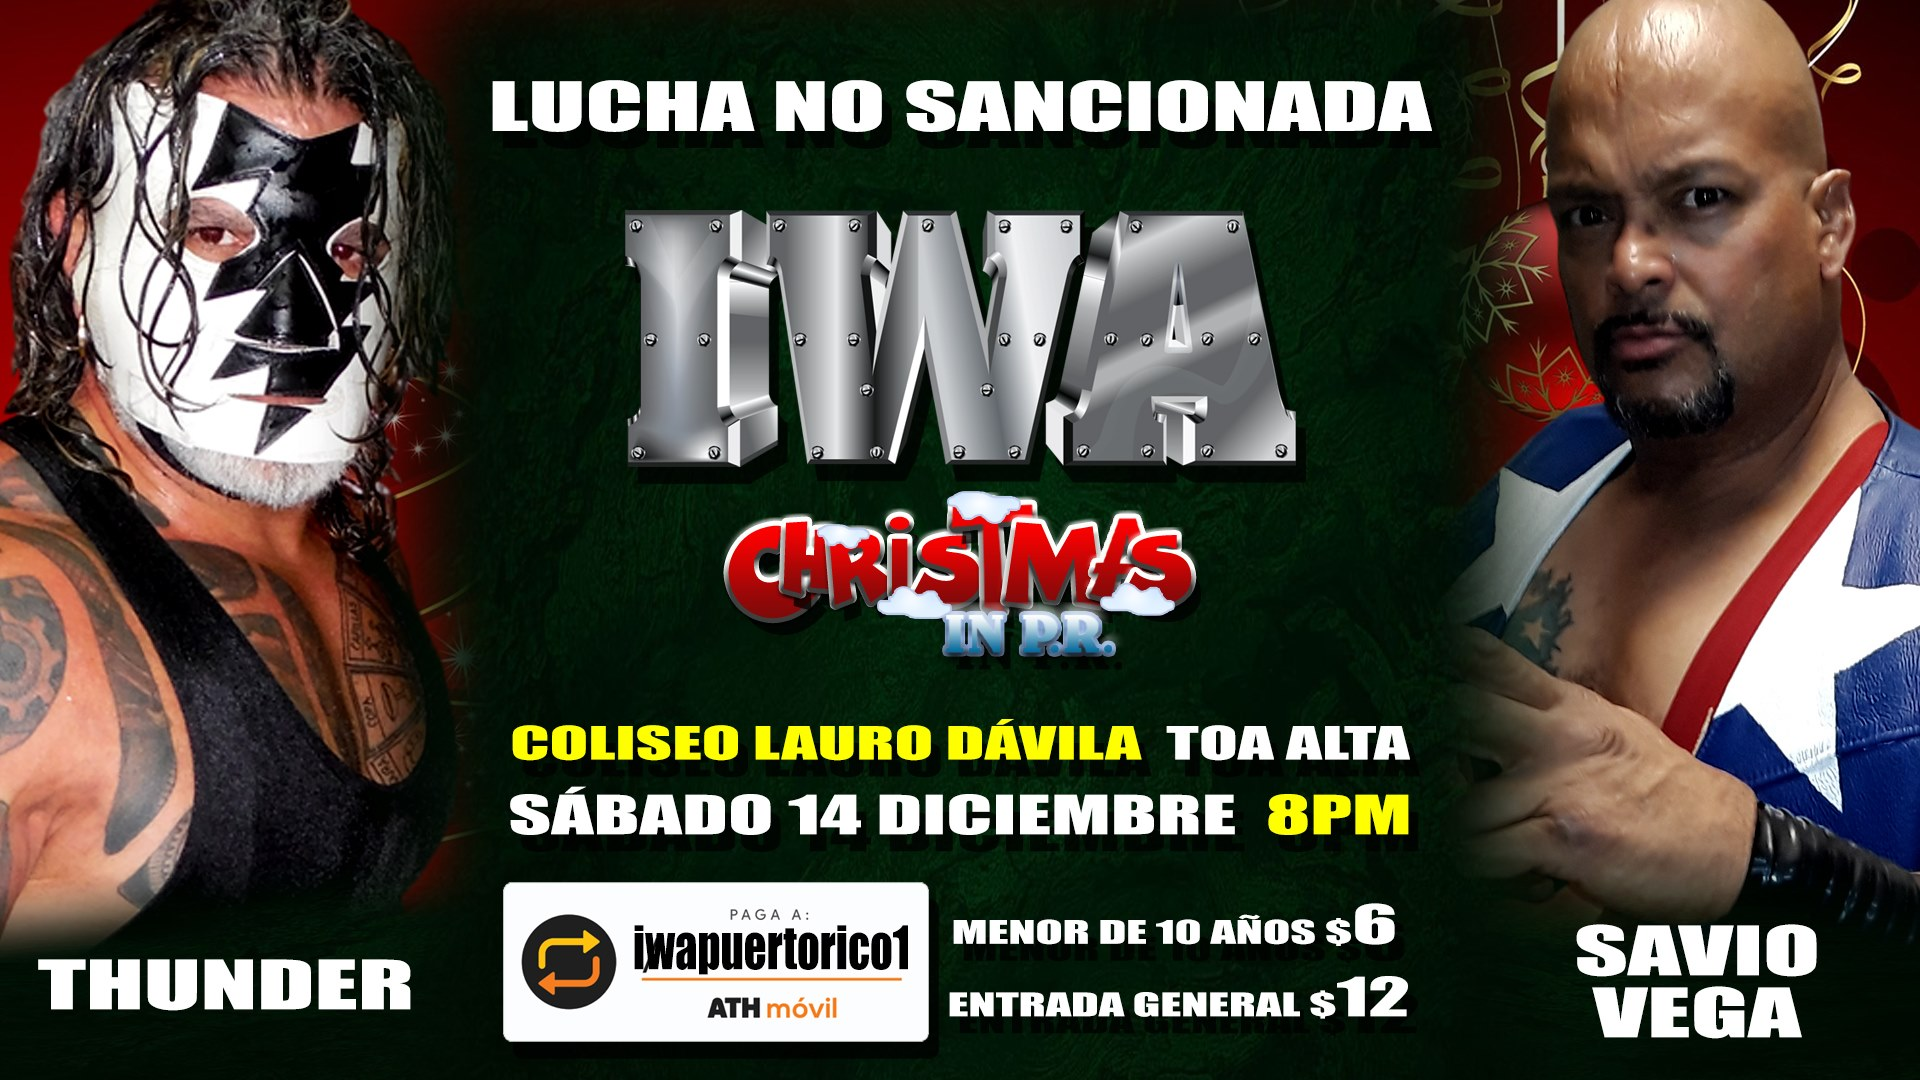 Cartel final para Christmas in PR - Savio Vega frente a Thunder 6